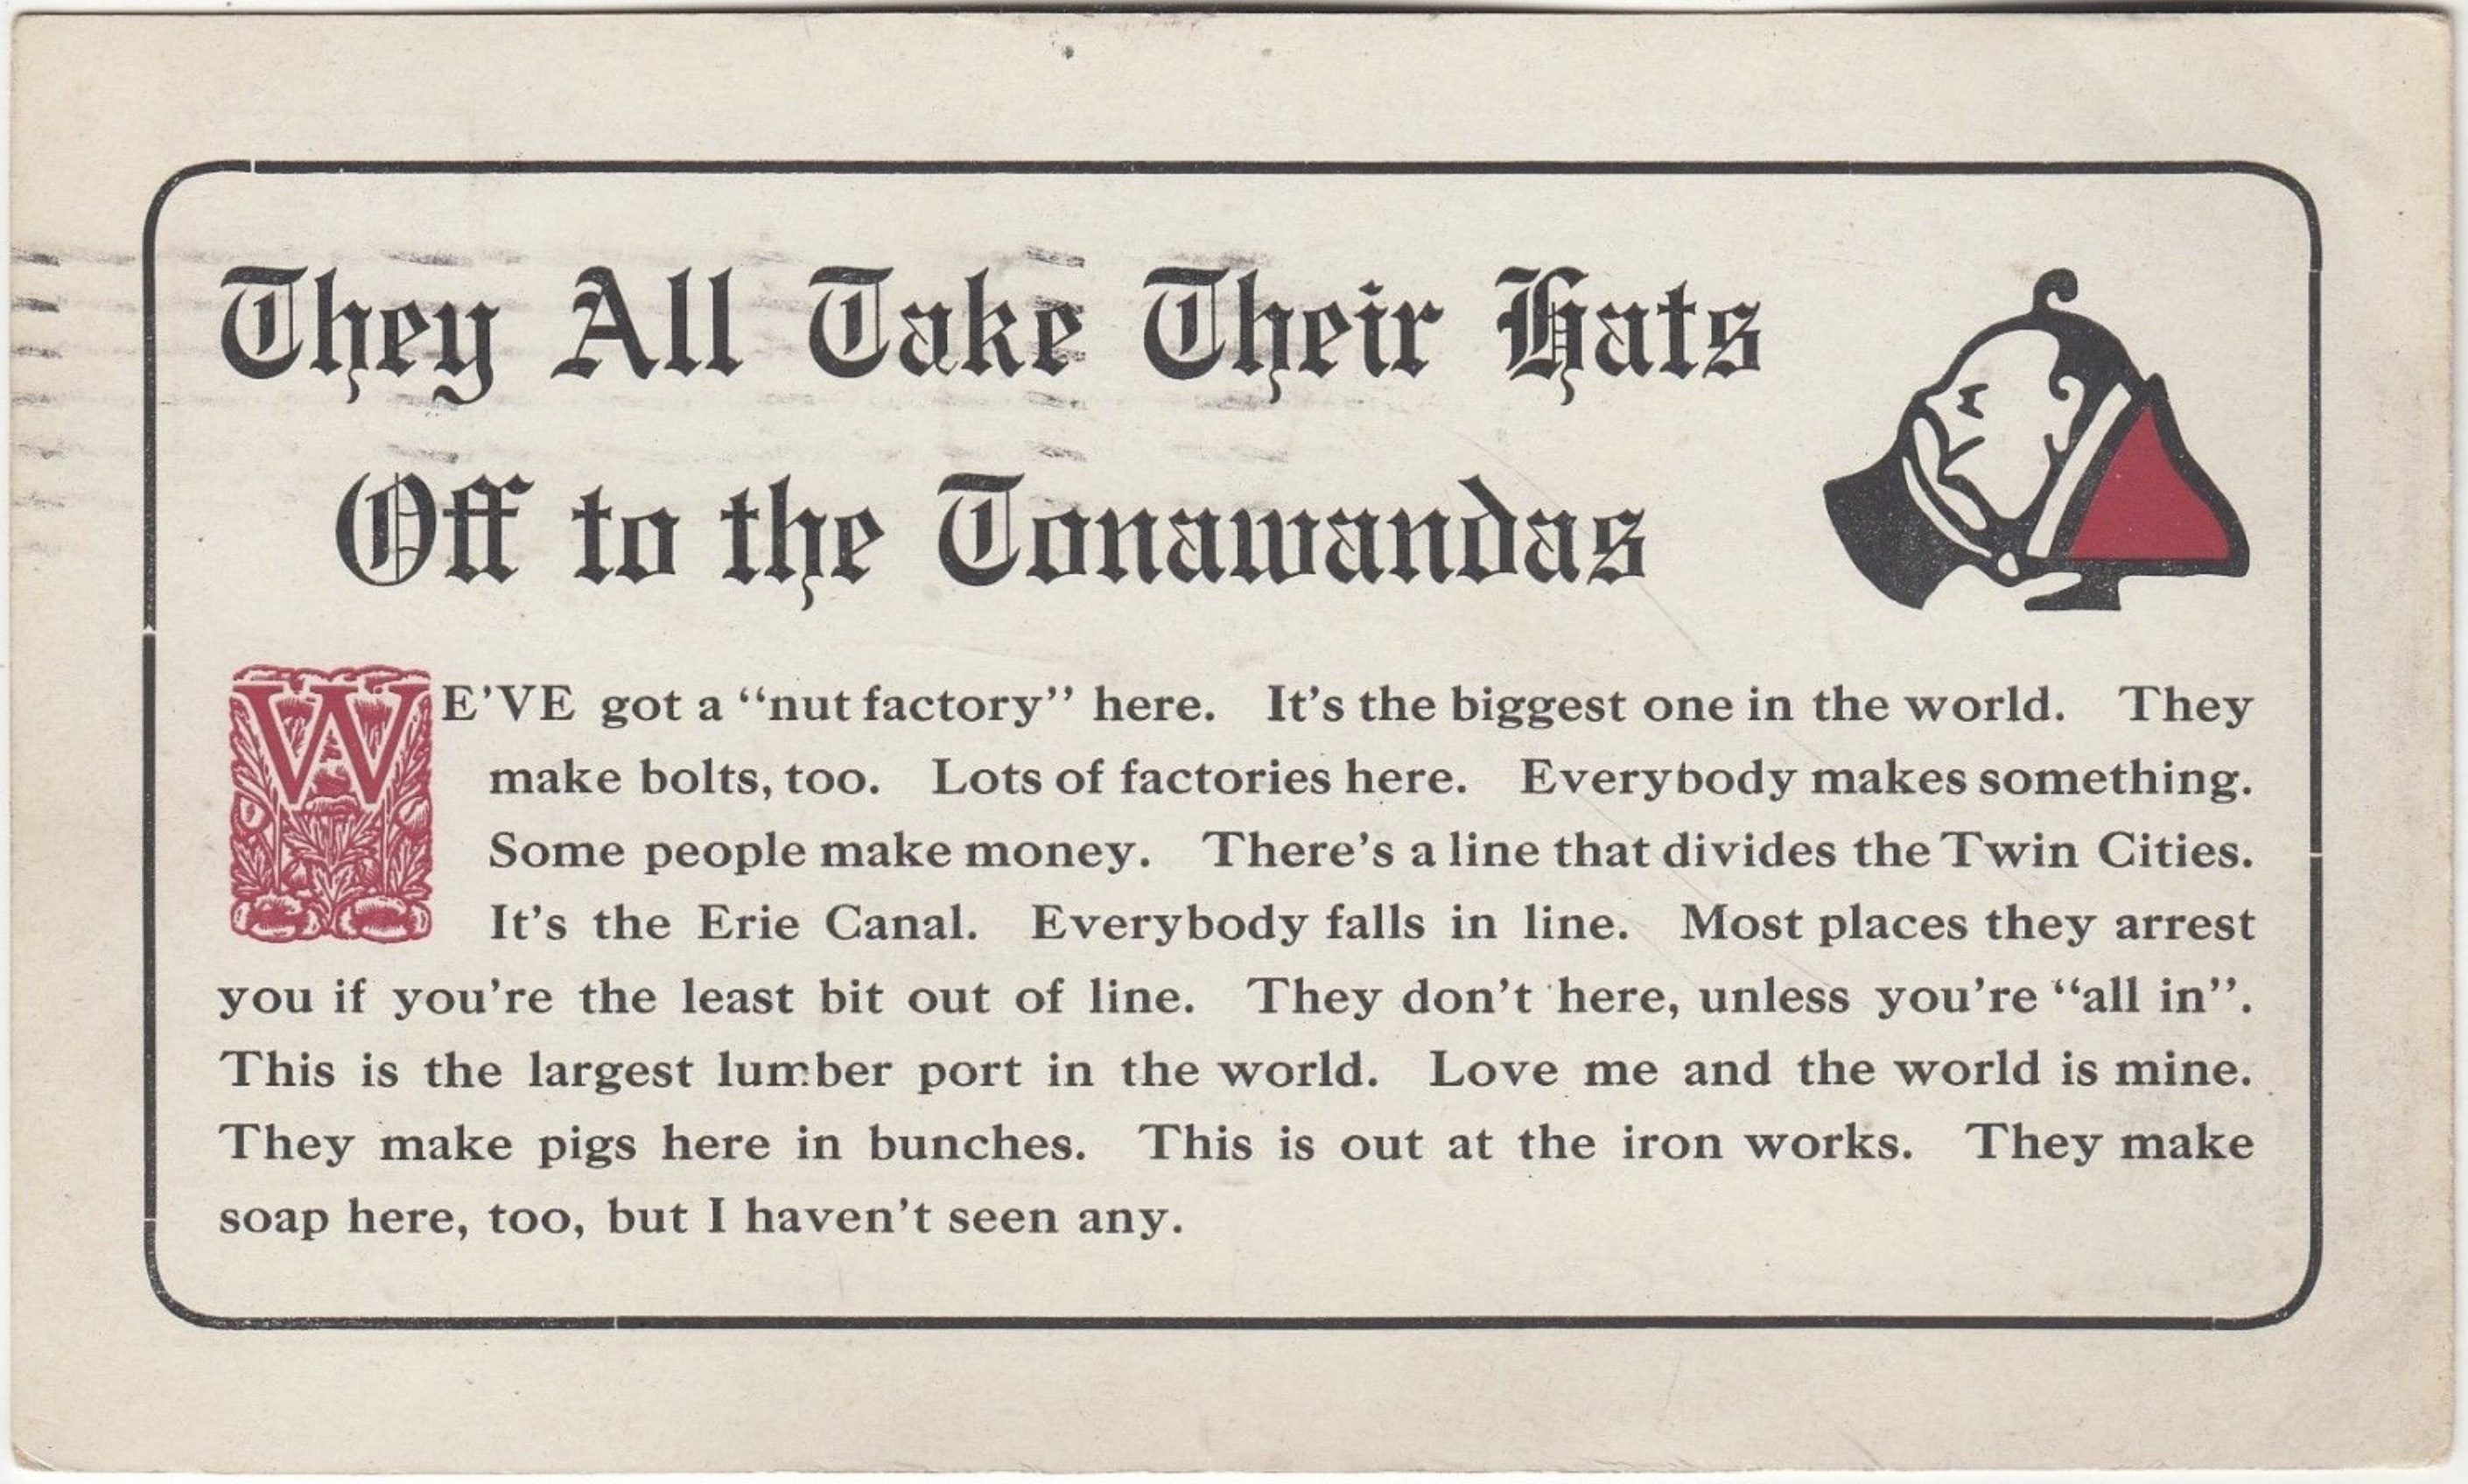 They all take their hats off to the Tonawandas.jpg